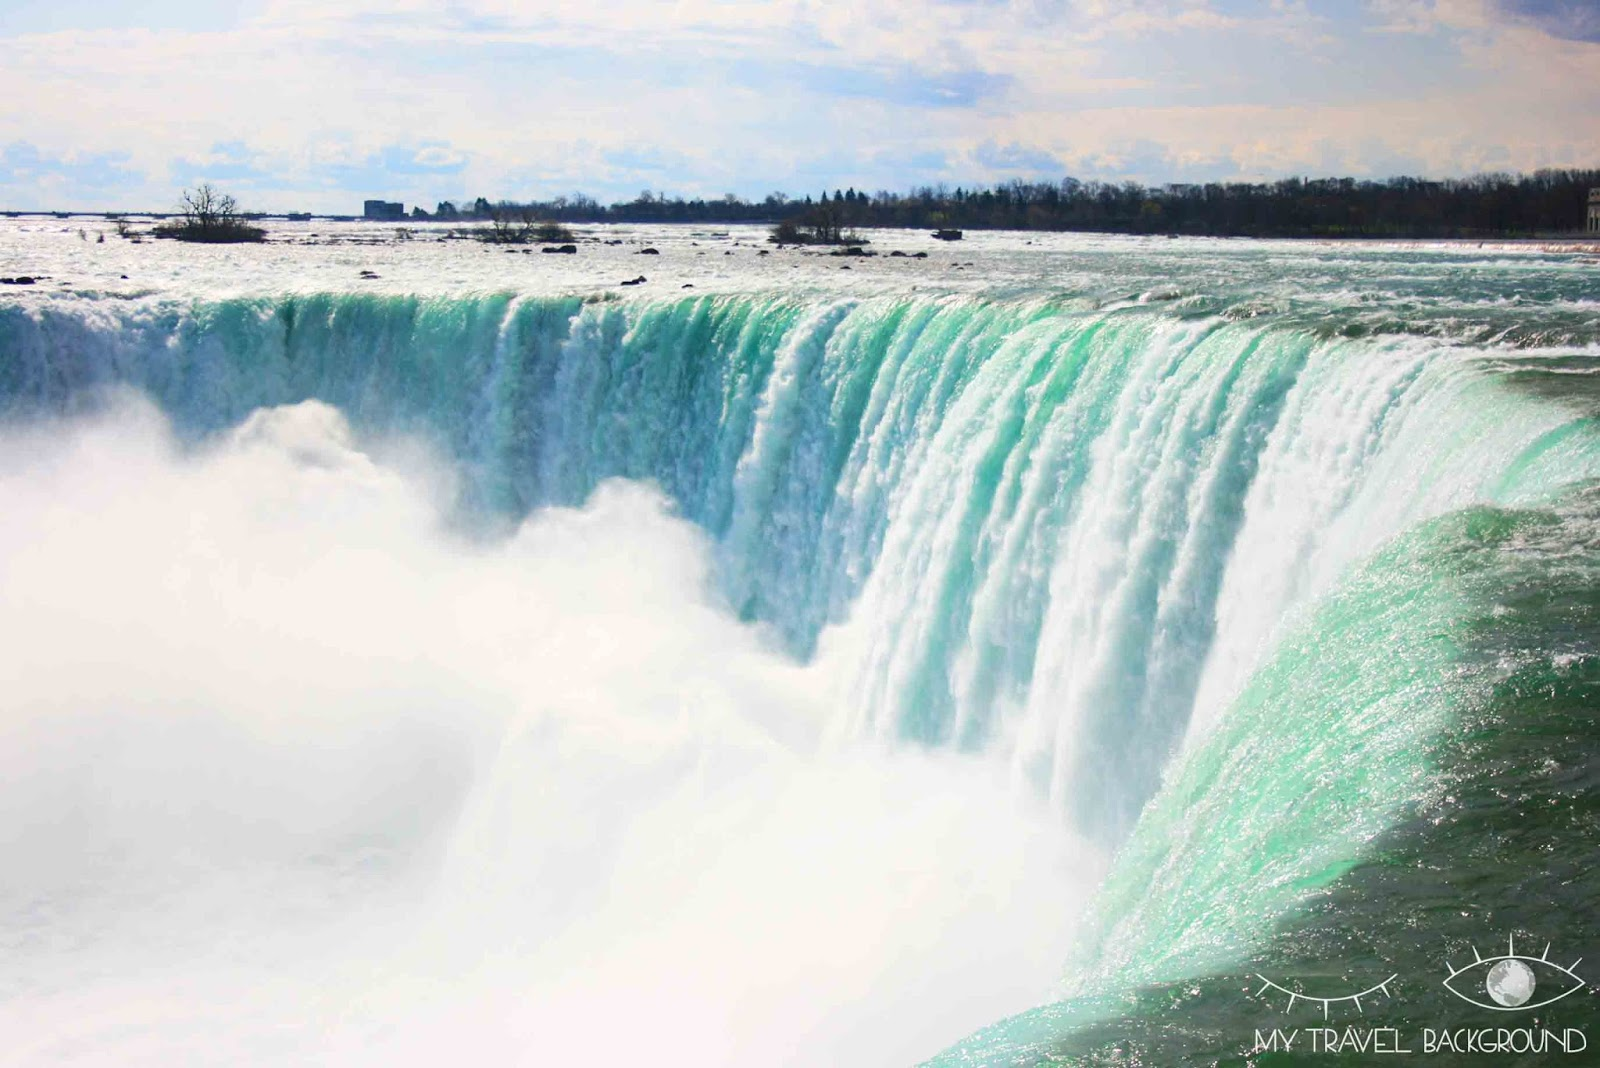 My Travel Background : Cartes Postale Canada